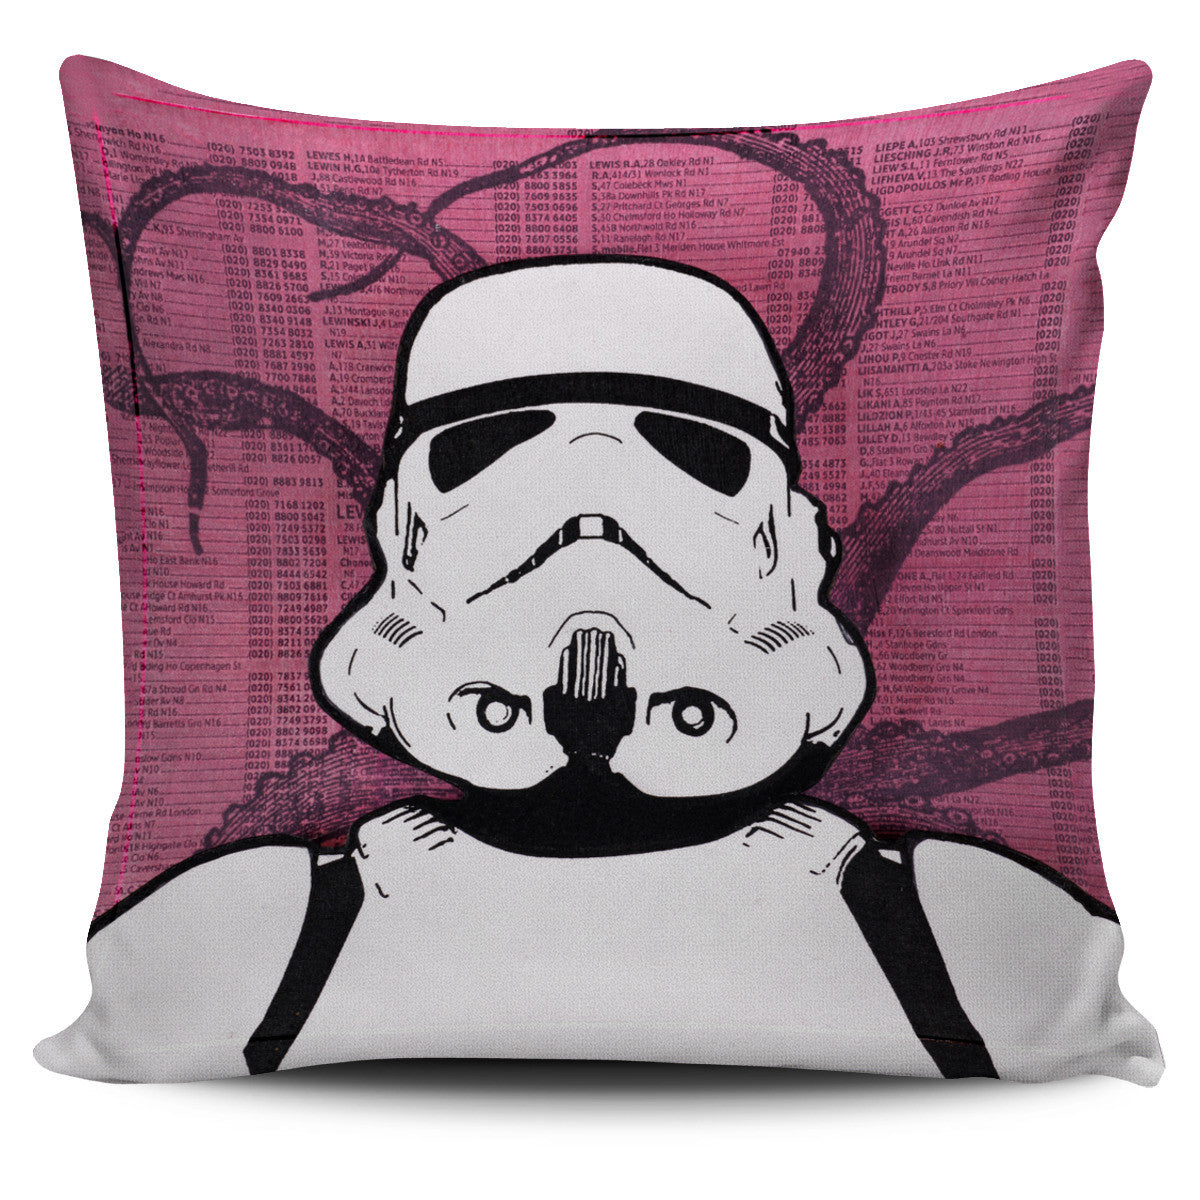 Galactic Series II Pillow Covers Offer